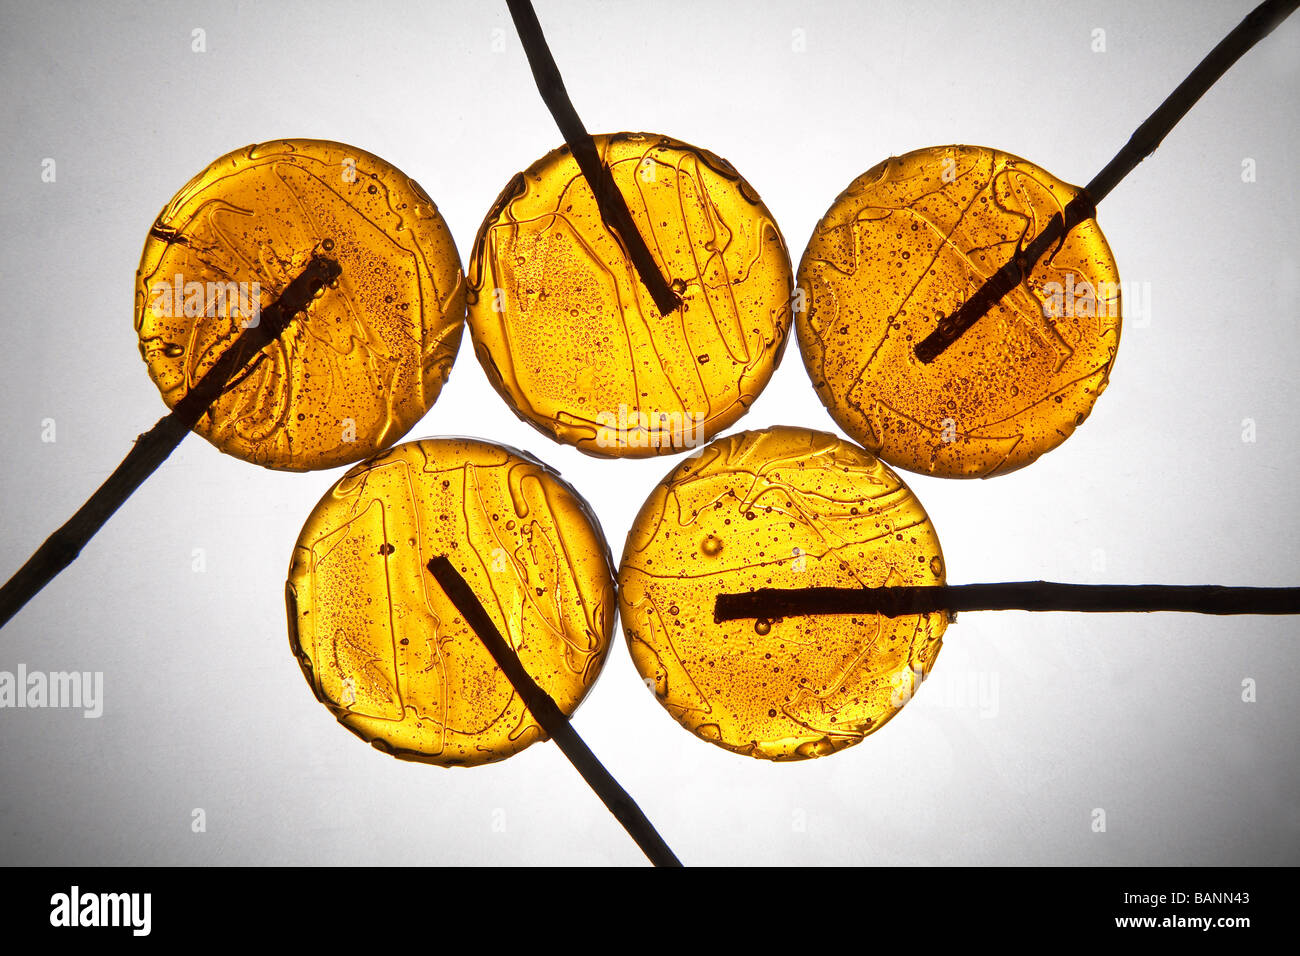 yellow lollipops on light grey background - Stock Image